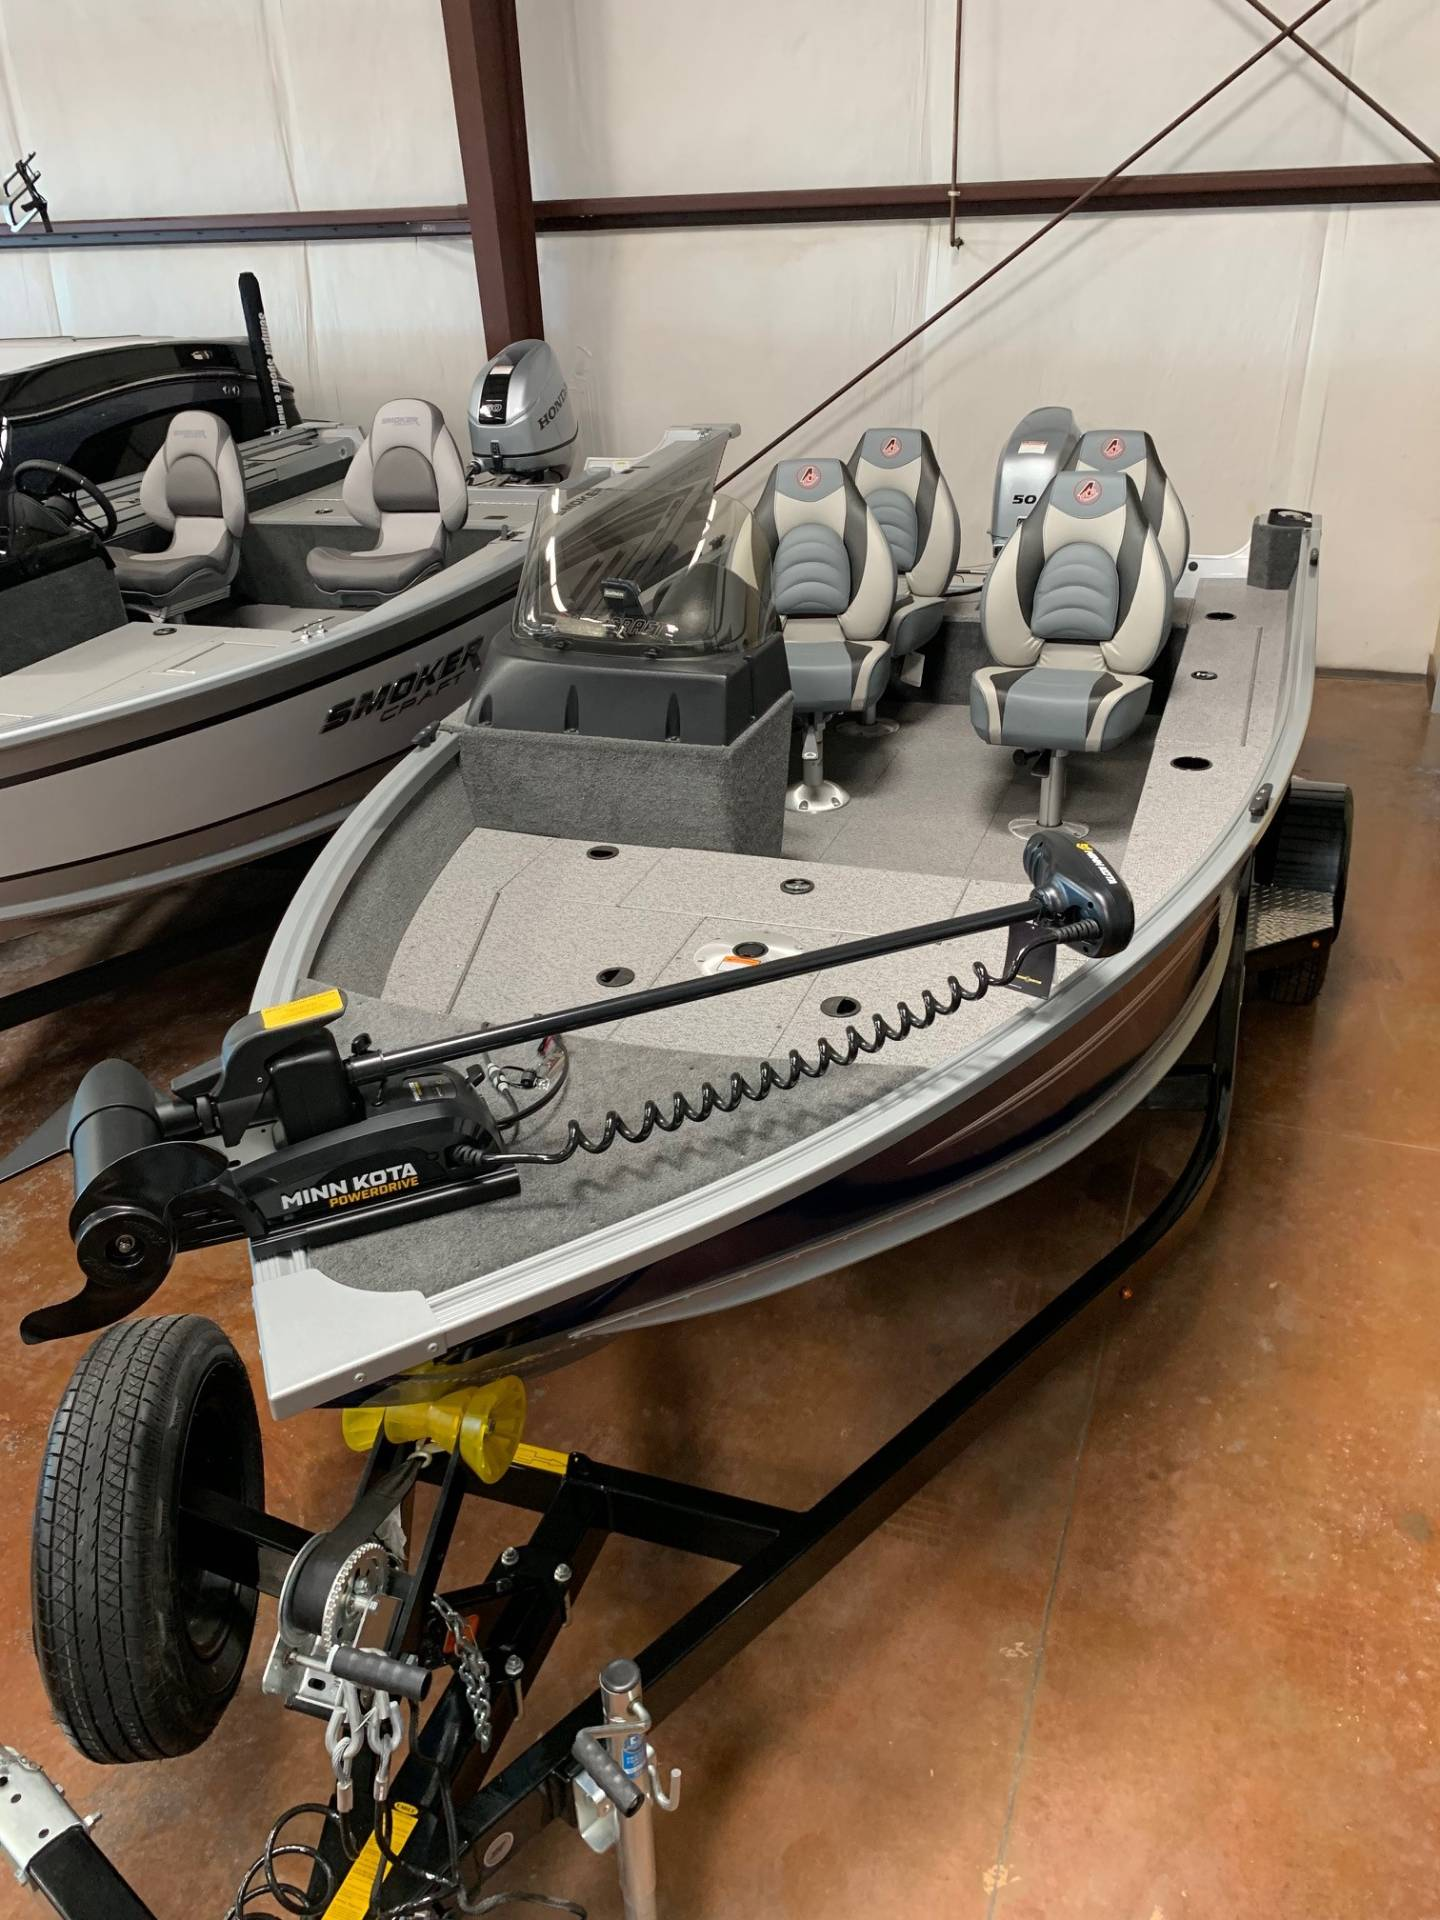 2019 Alumacraft Classic 165 CS in Madera, California - Photo 2